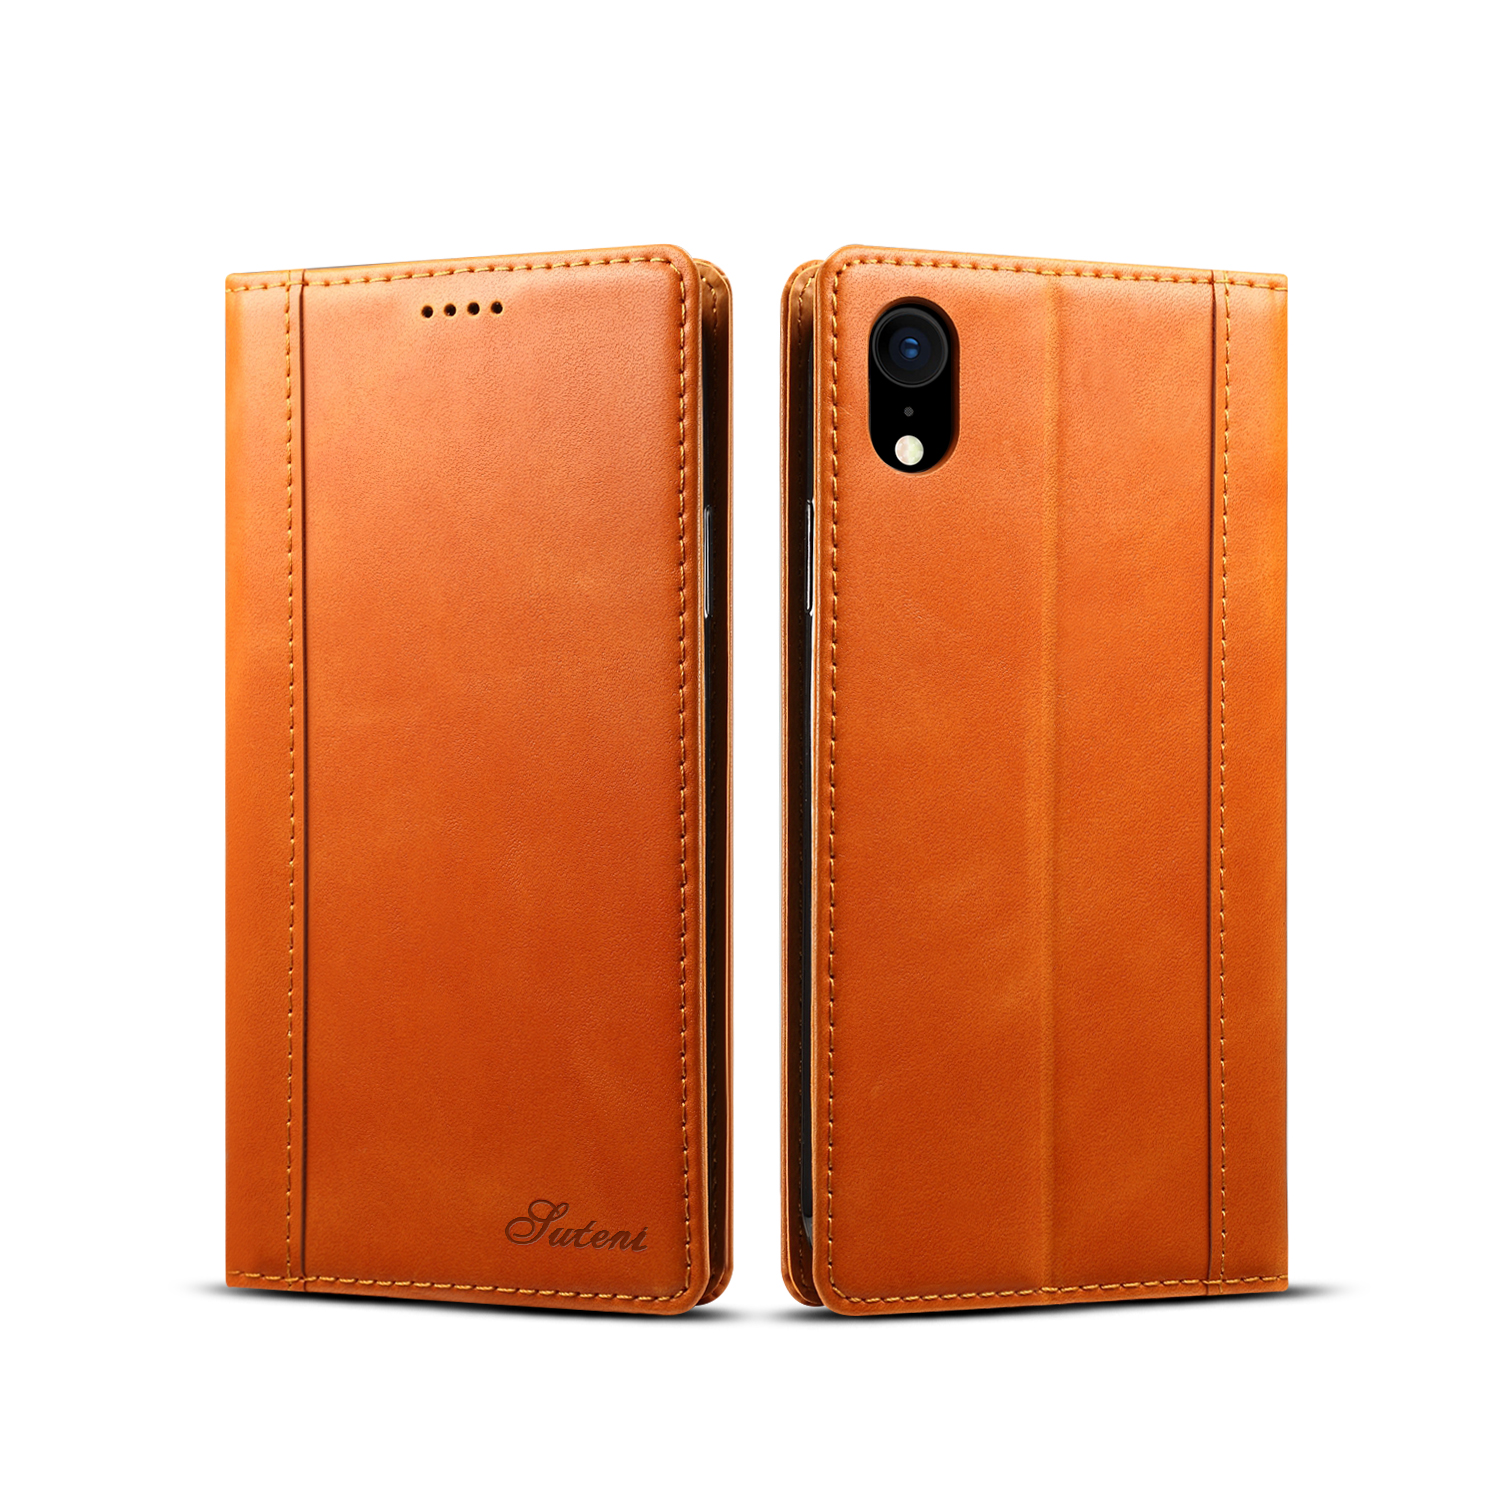 Bakeey Protective Case For iPhone XR Genuine Leather Magnetic Flip Wallet Kickstand Cover